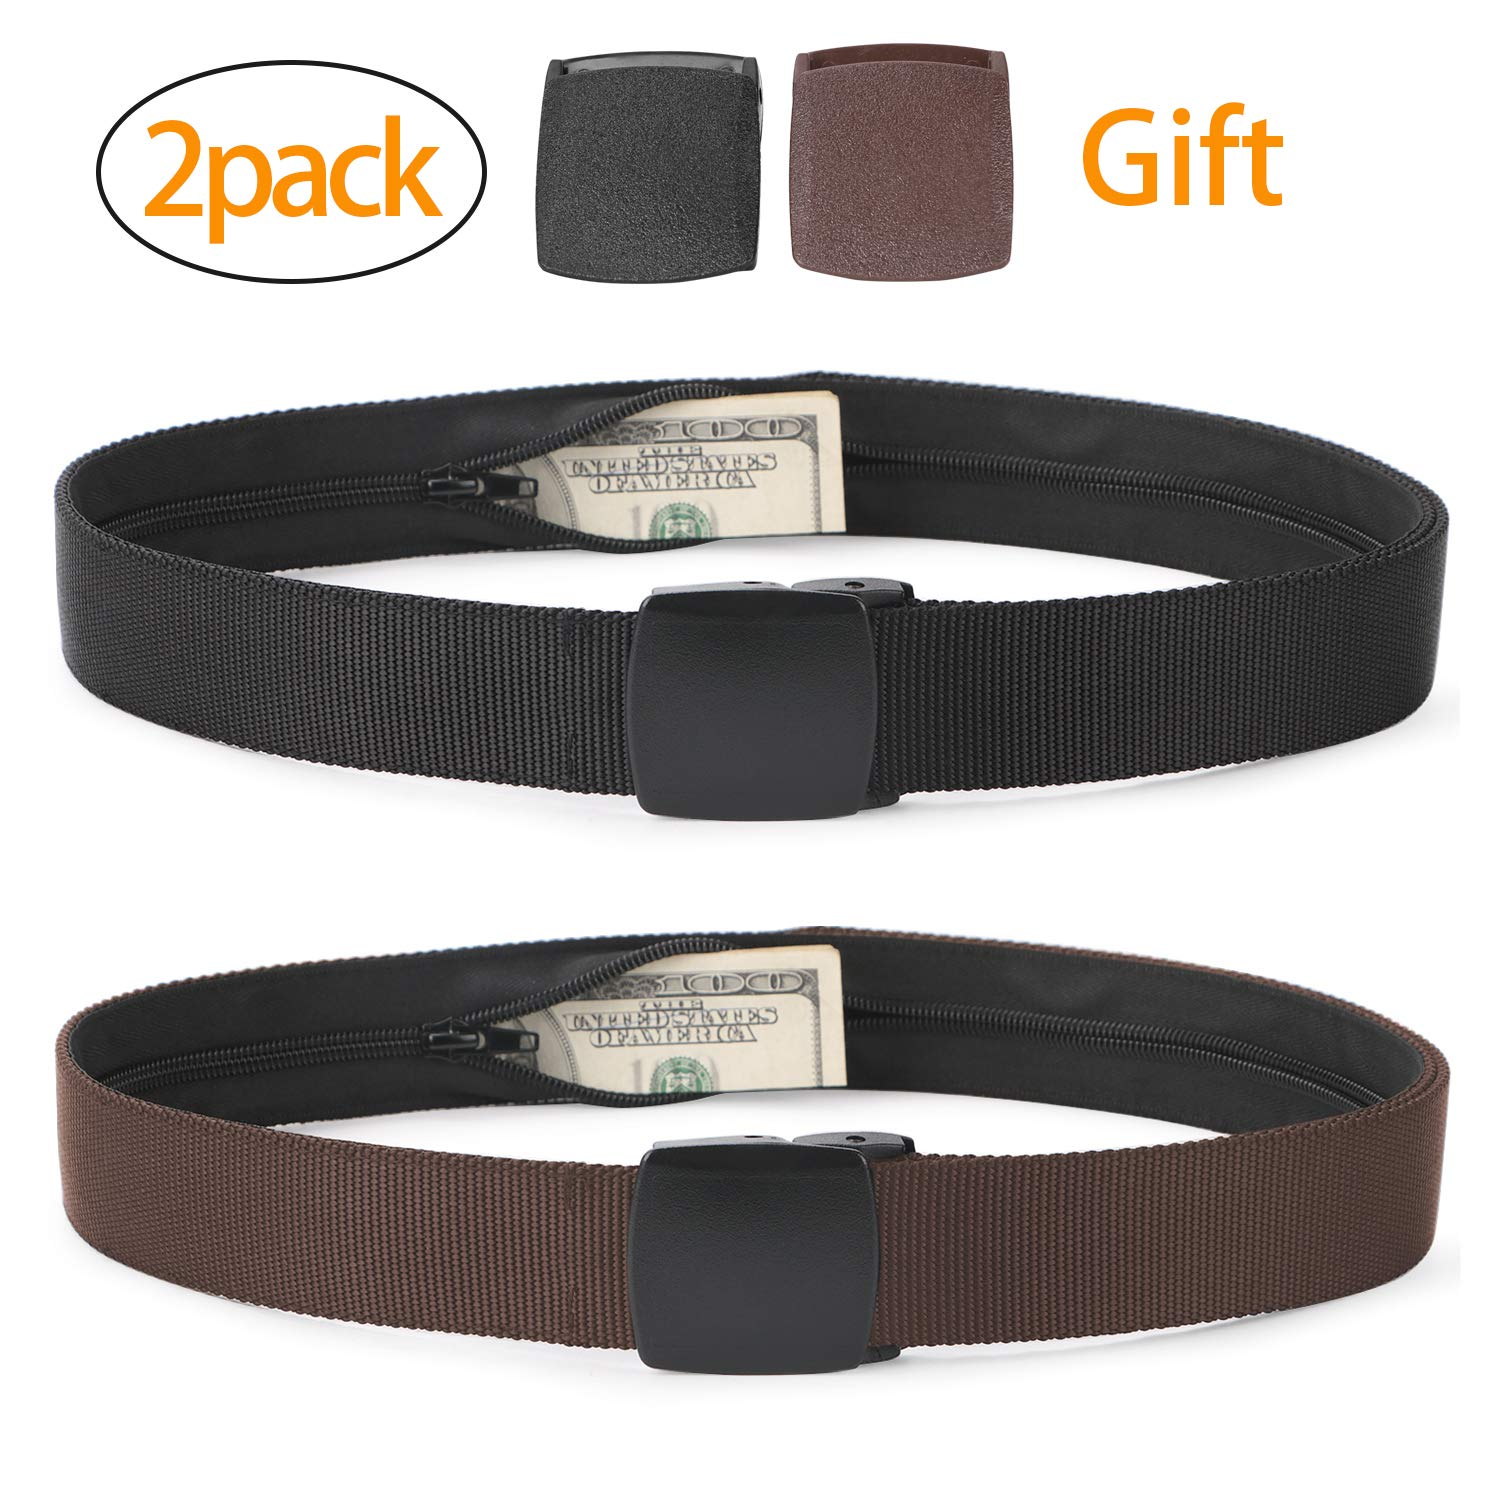 Travel Security Money Belt with Hidden Money Pocket - Cashsafe Anti-Theft Wallet Unisex Nickel free Nylon Belt by JASGOOD (Suit for pant size 26-40'', 7-Black+Coffee)